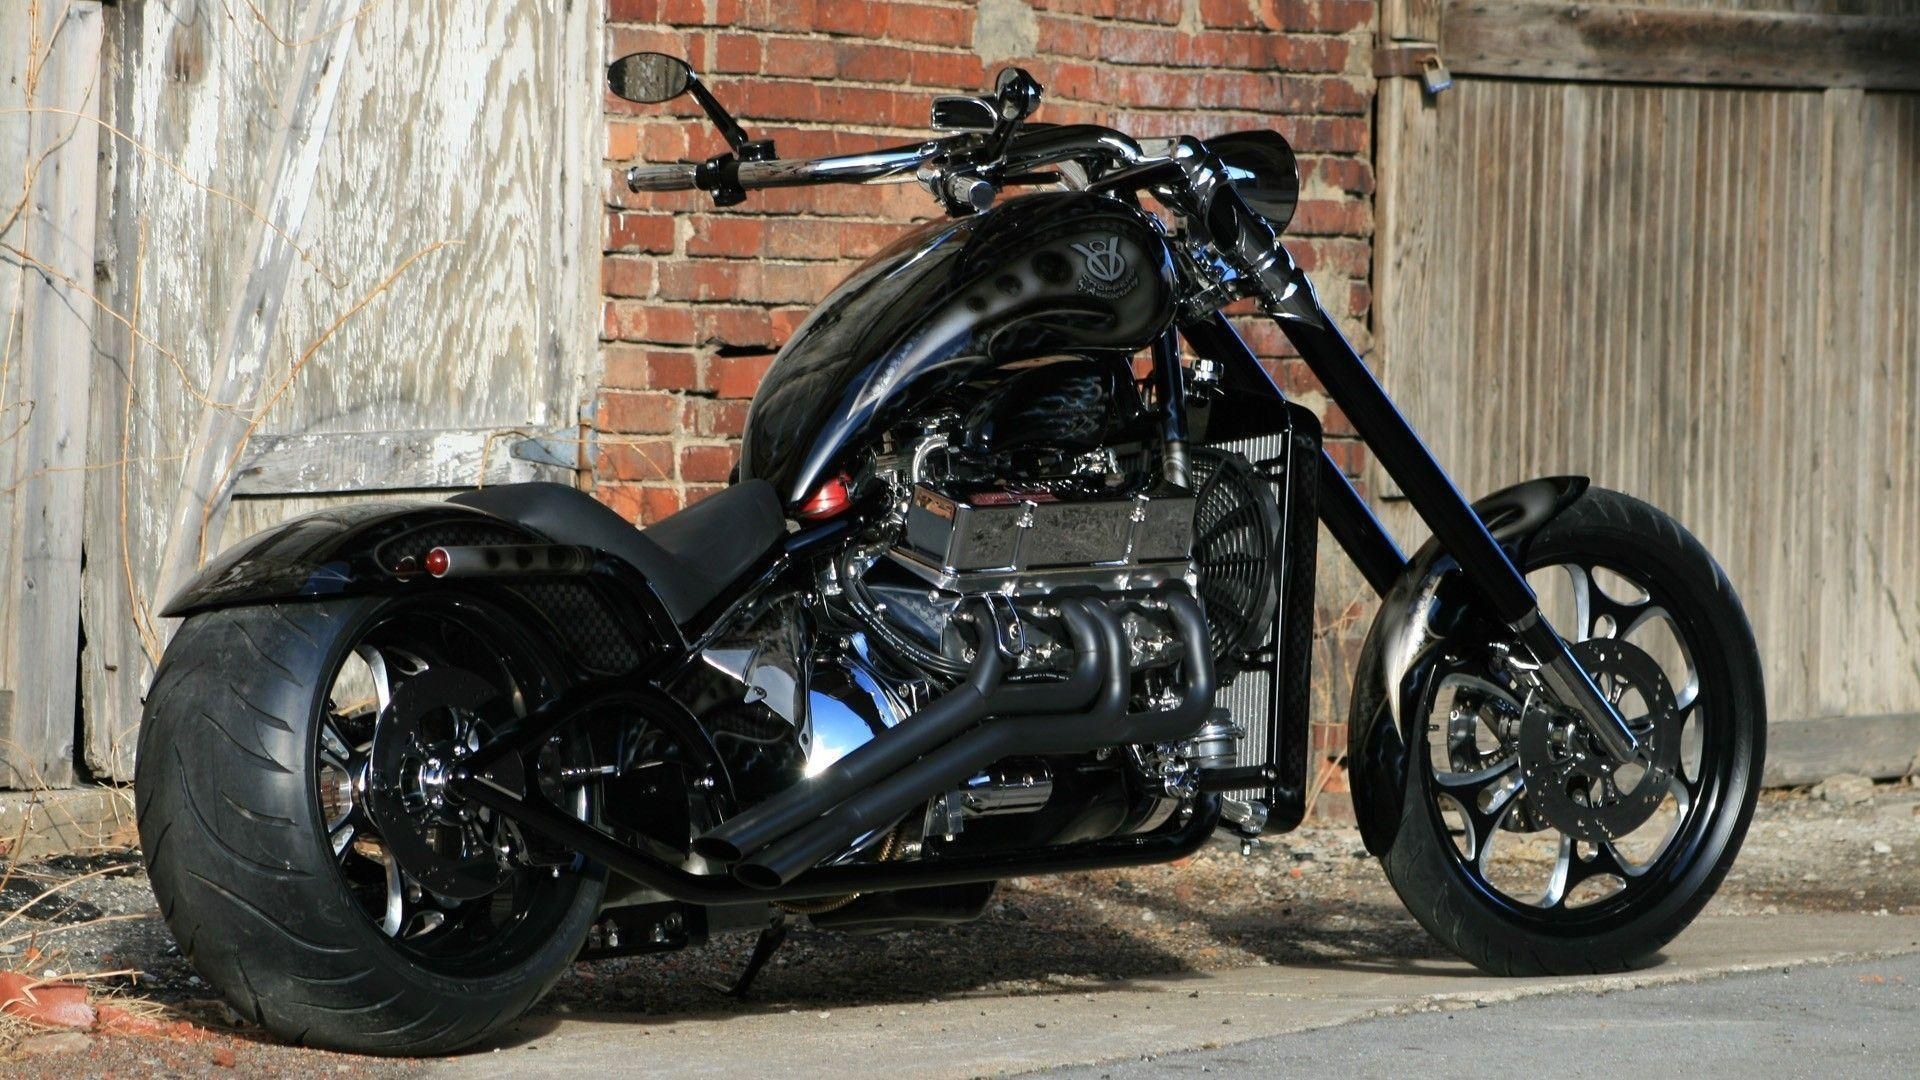 American Chopper High Quality Wallpapers